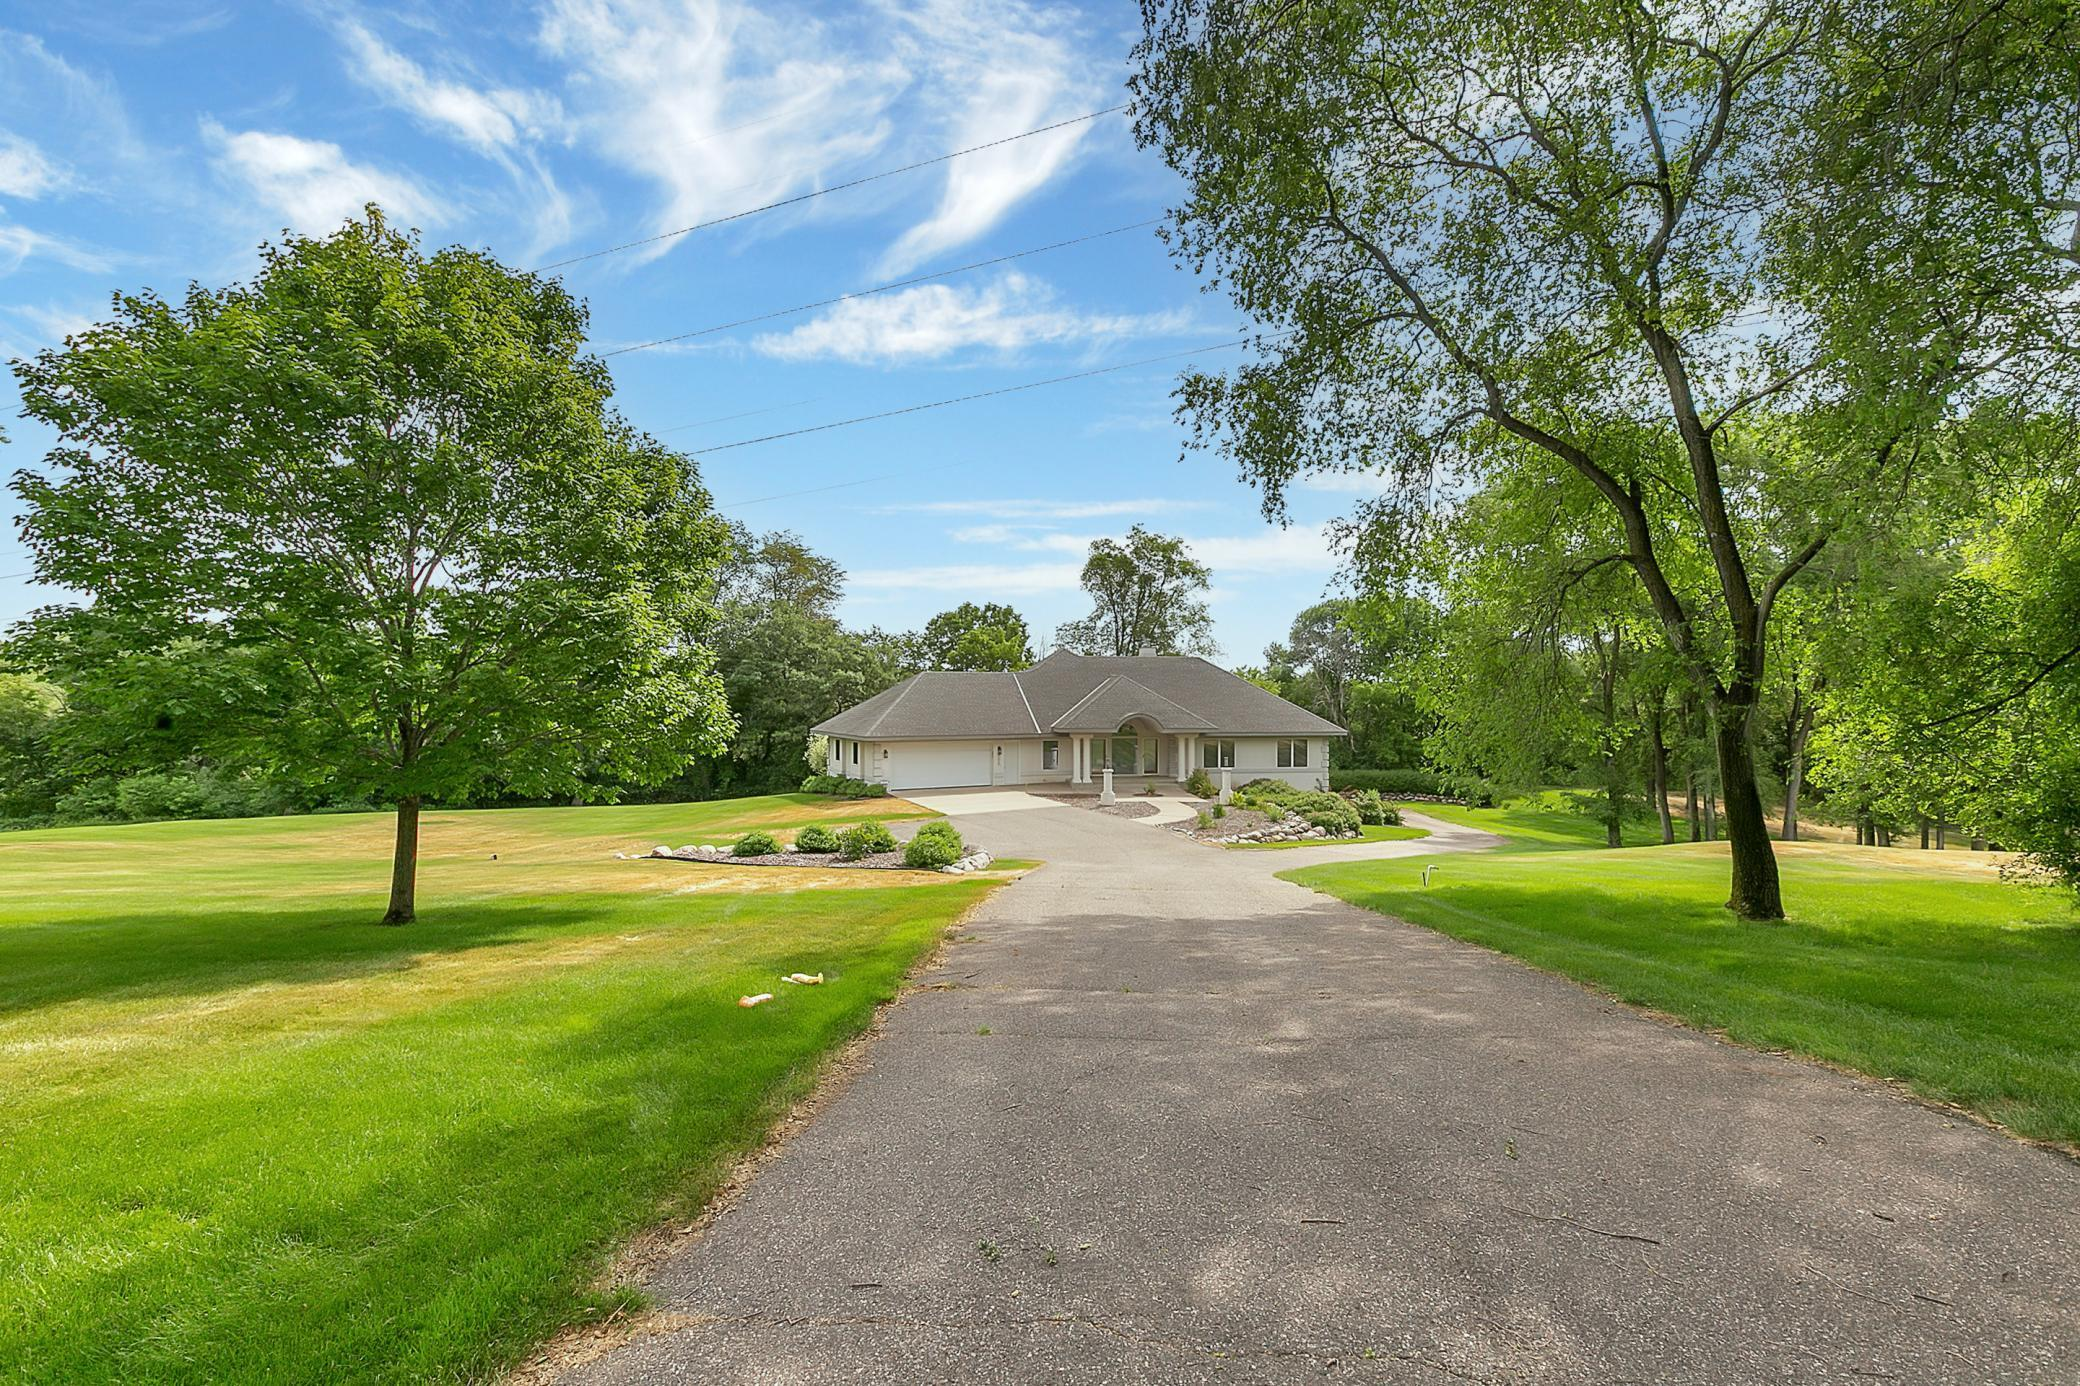 Enjoy this recently updated home as it offers great views and is located near a trail system. The 3.45 acres provides a feeling of the country, while being in town. This home will not disappoint!